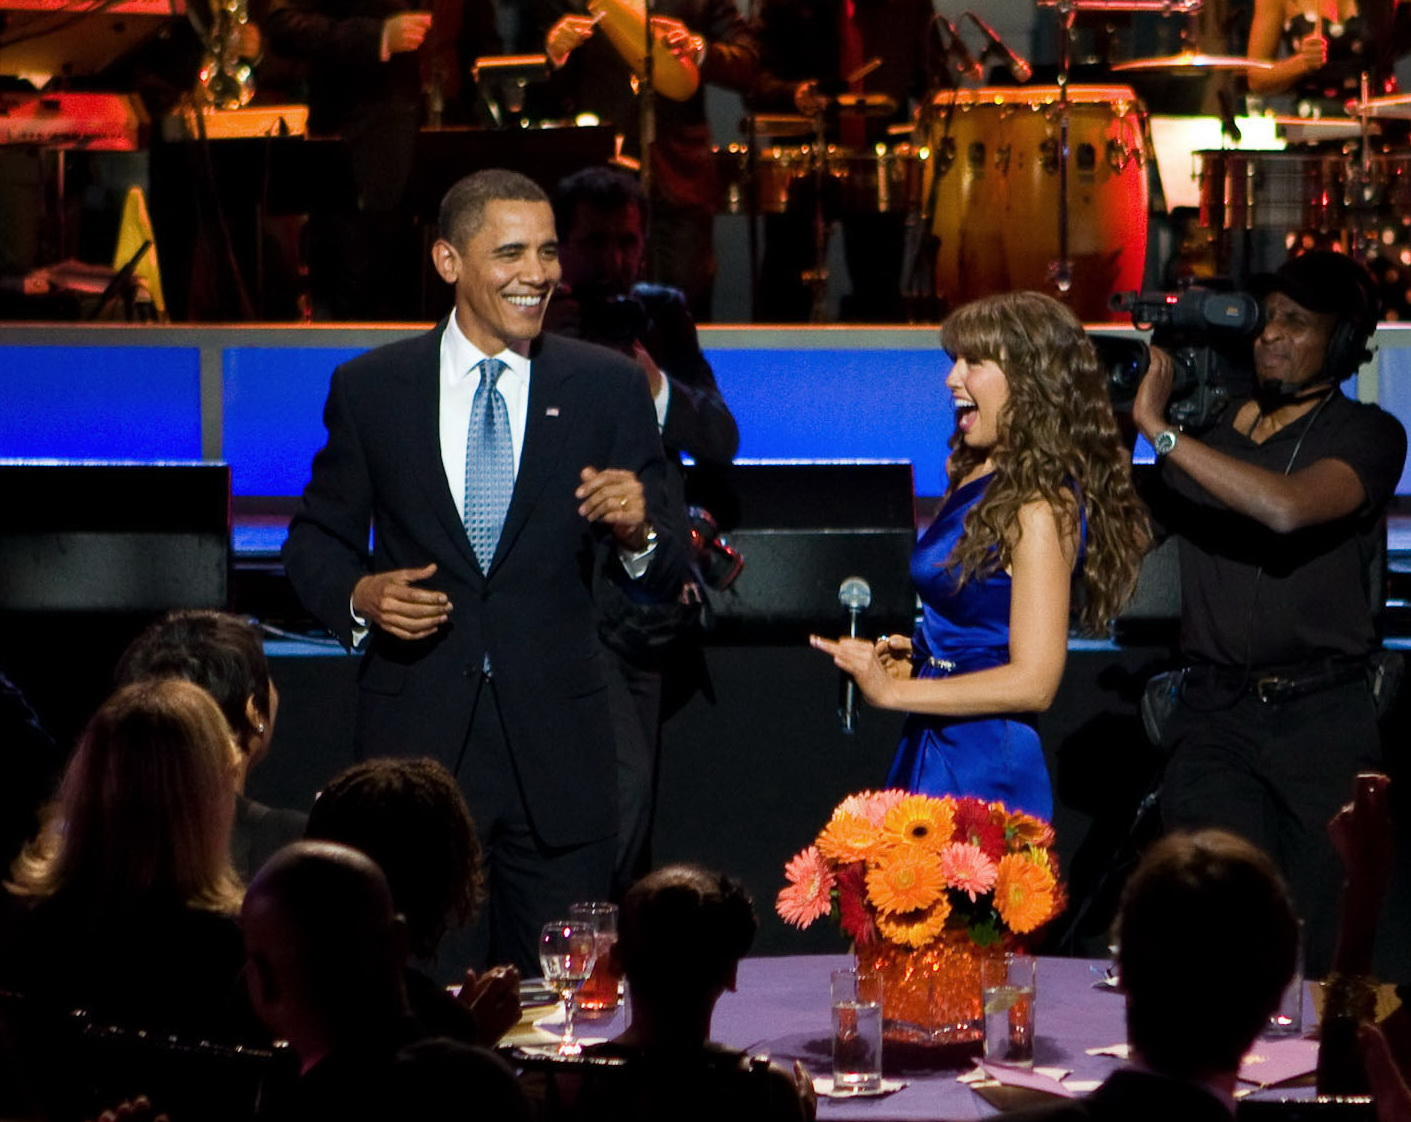 Obama Speaks about Hispanics in the USA